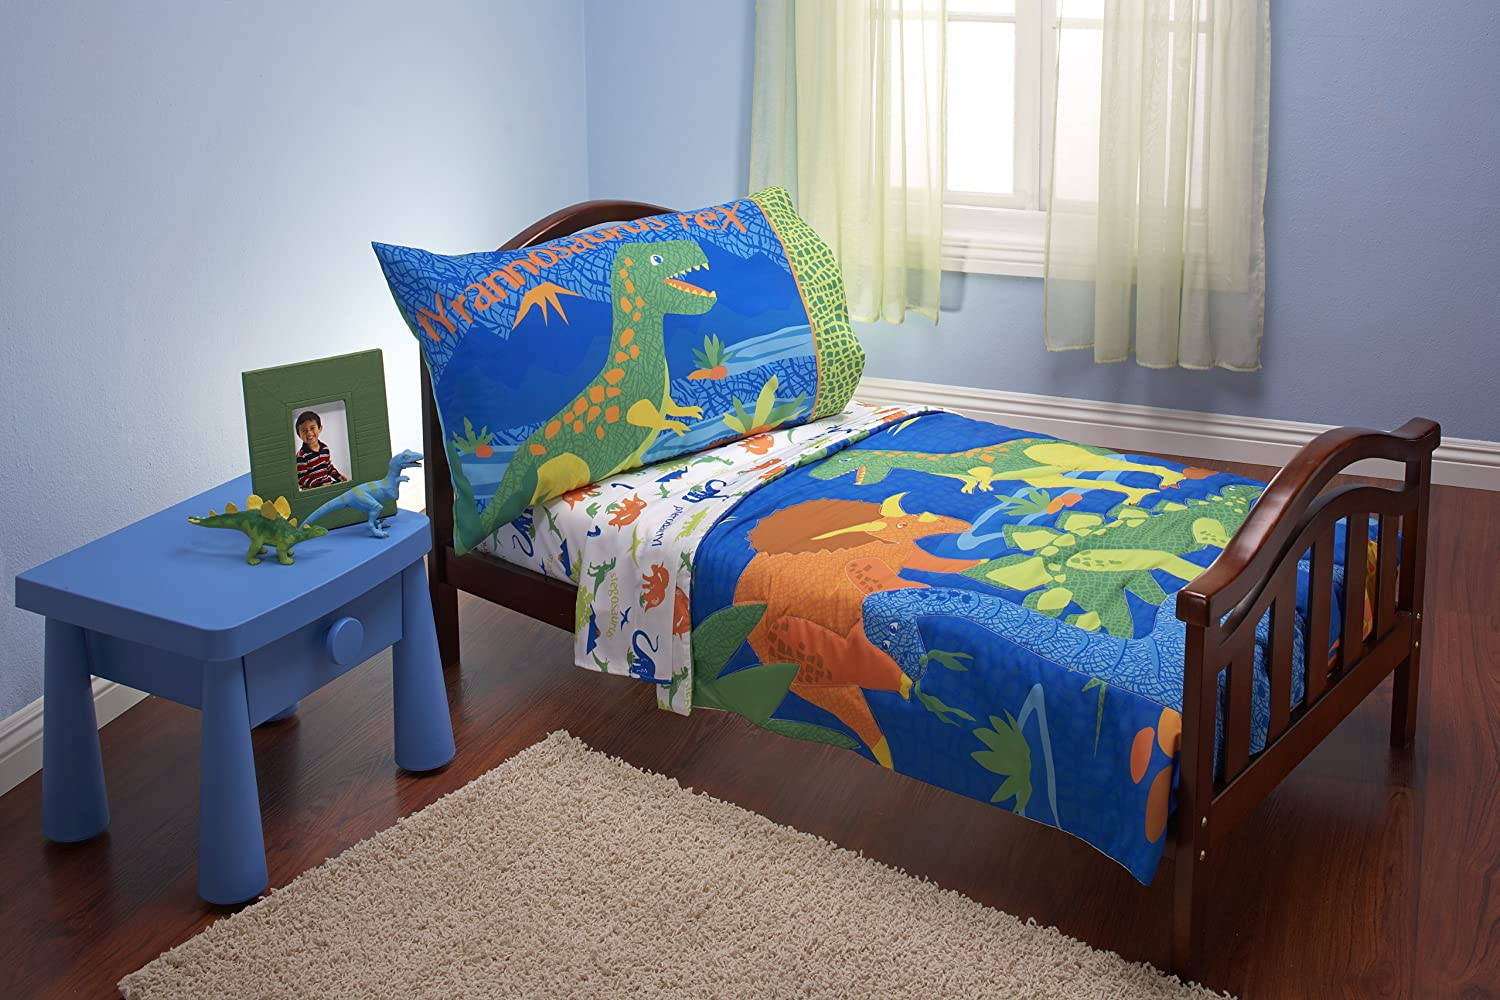 Amazon.com : Everything Kids 4 Piece Toddler Bedding Set, Dinosaurs :  Toddler Bed Sheets Boy : Baby